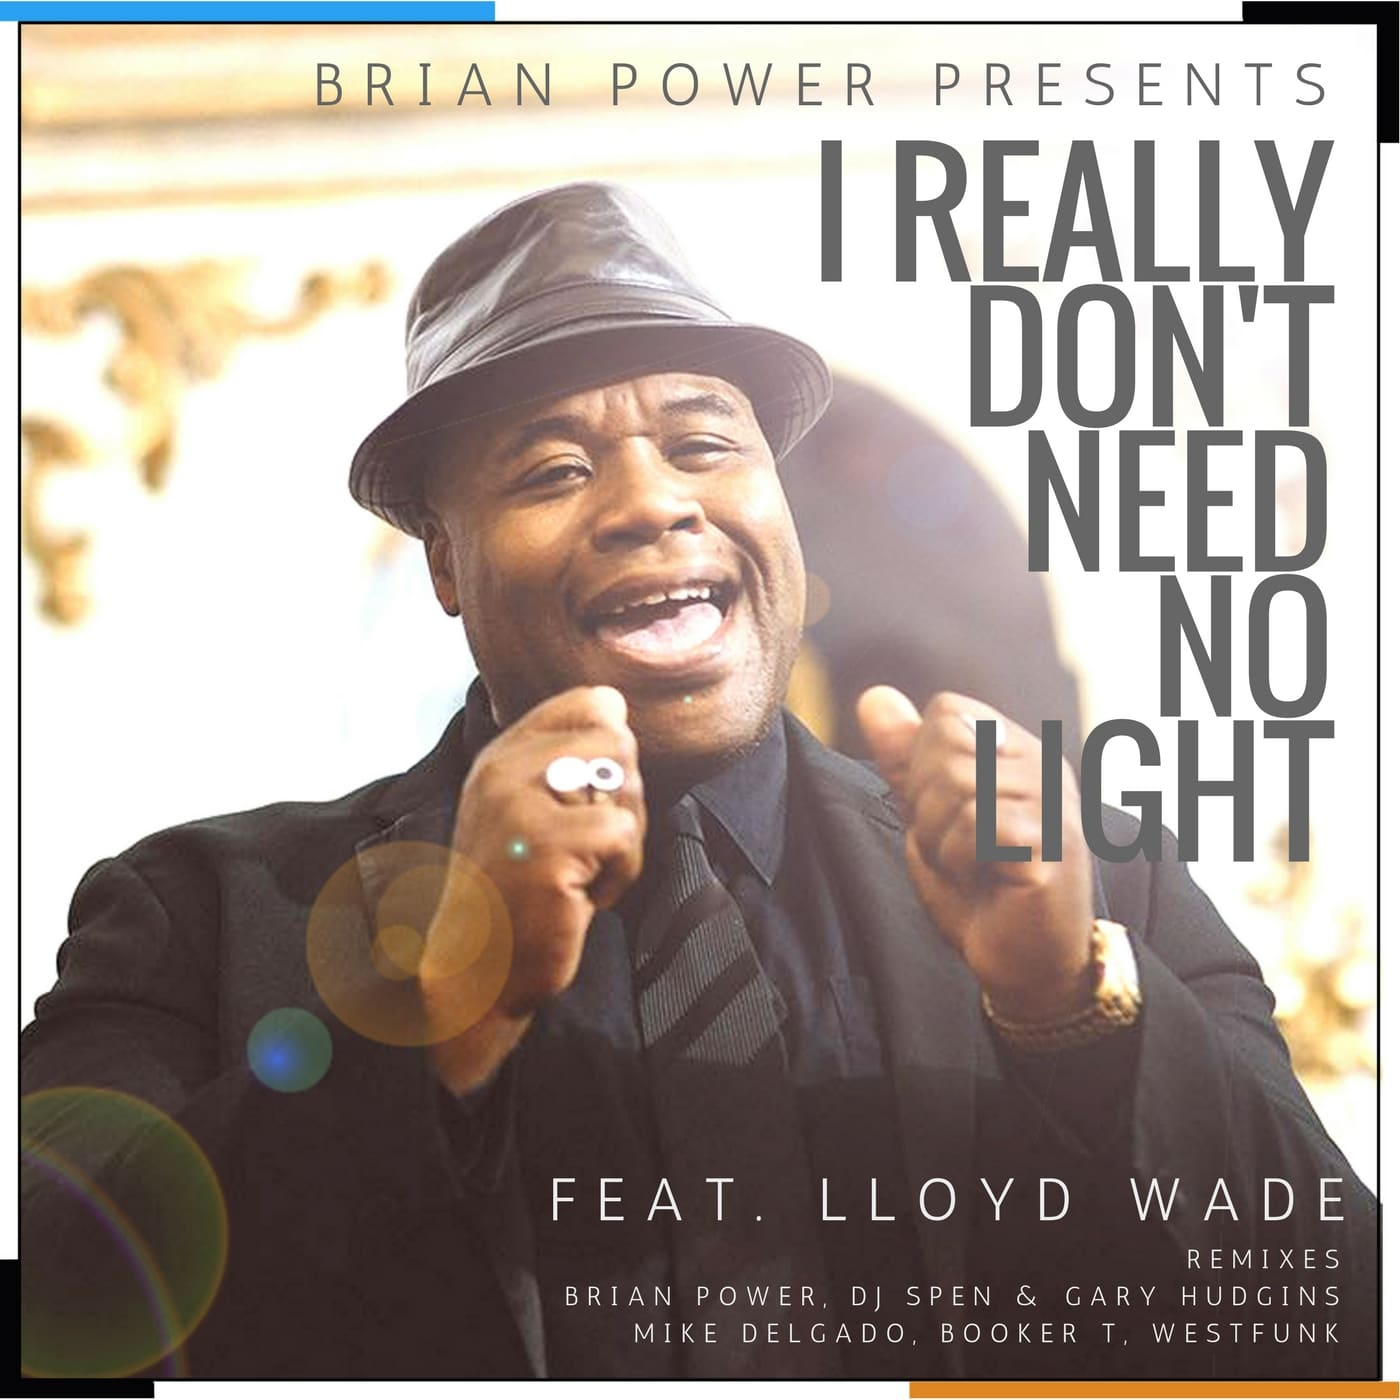 Brian Power Presents I Really Don't Need No Light Featuring Lloyd Wade